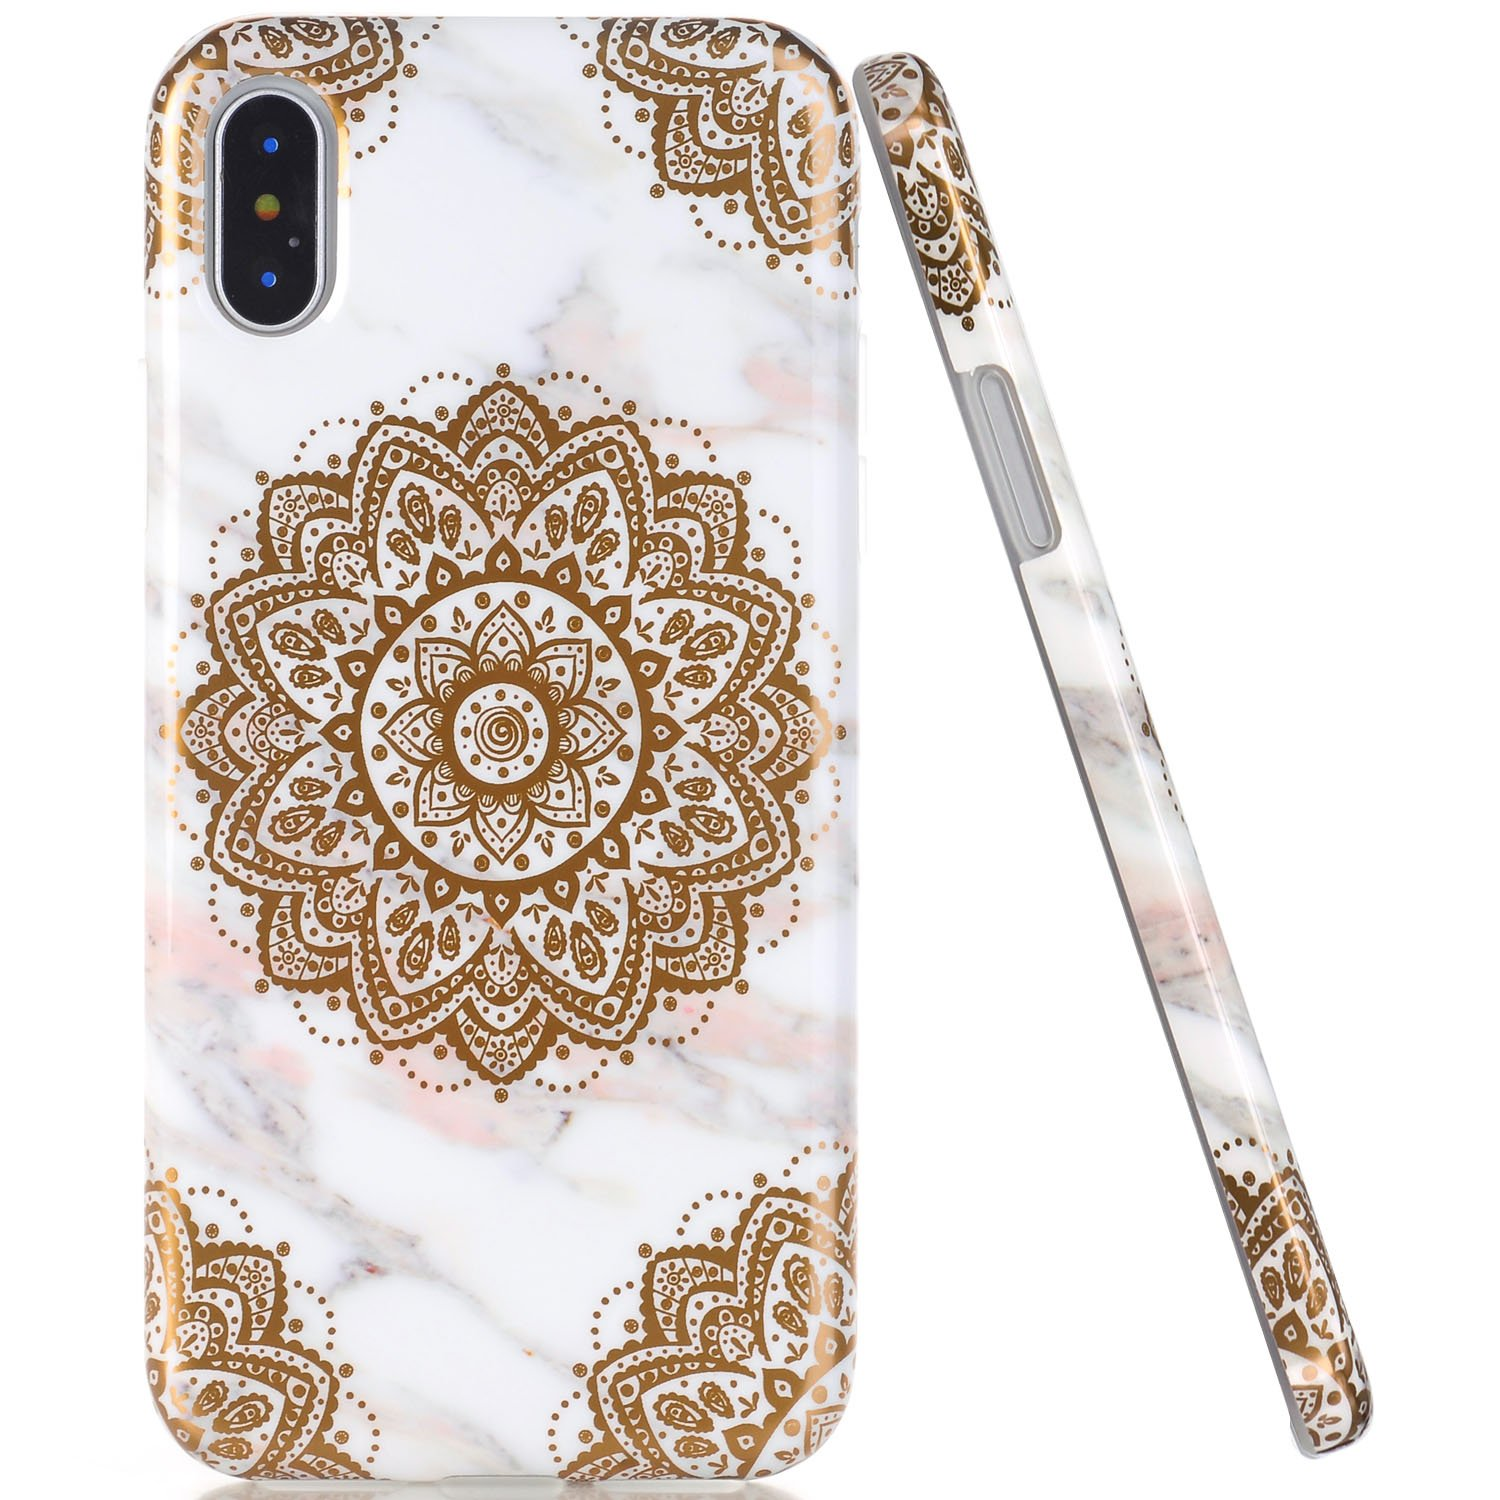 reputable site e0c4b 75040 JAHOLAN iPhone X Case iPhone Xs Case Shiny Gold Mandala Flower Marble  Design Clear Bumper TPU Soft Rubber Silicone Cover Phone Case for iPhone Xs  ...